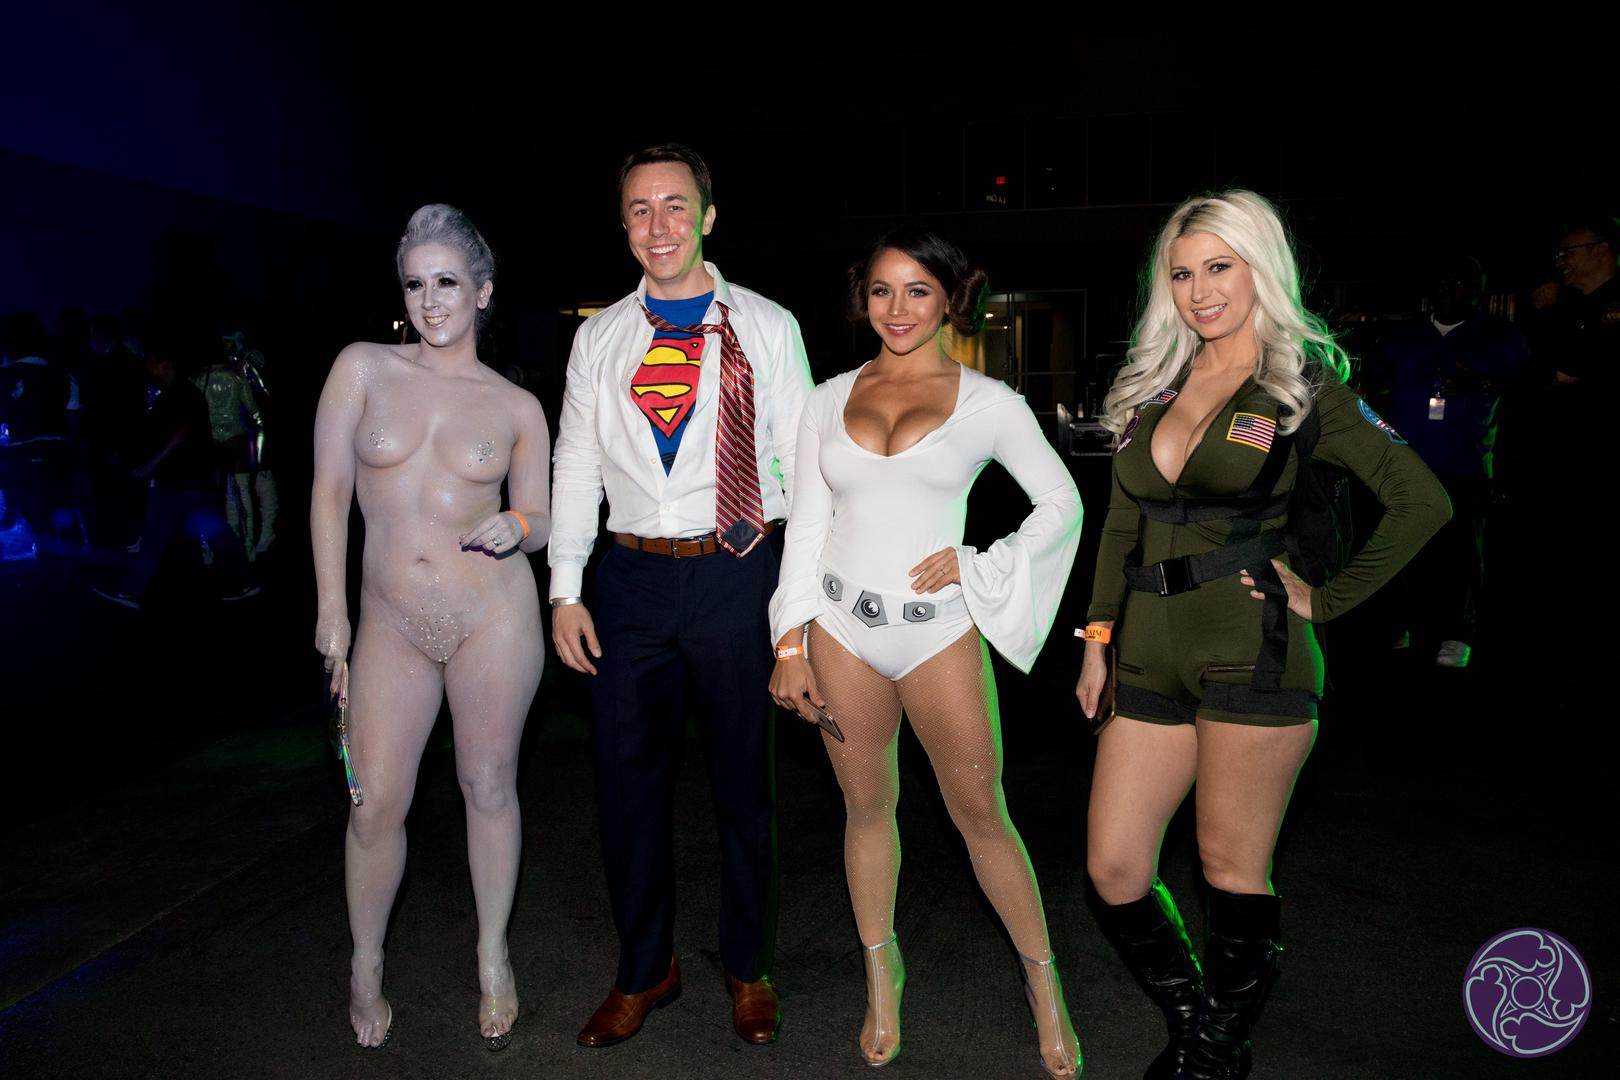 VIP Guests at the 2017 Maxim Halloween Party